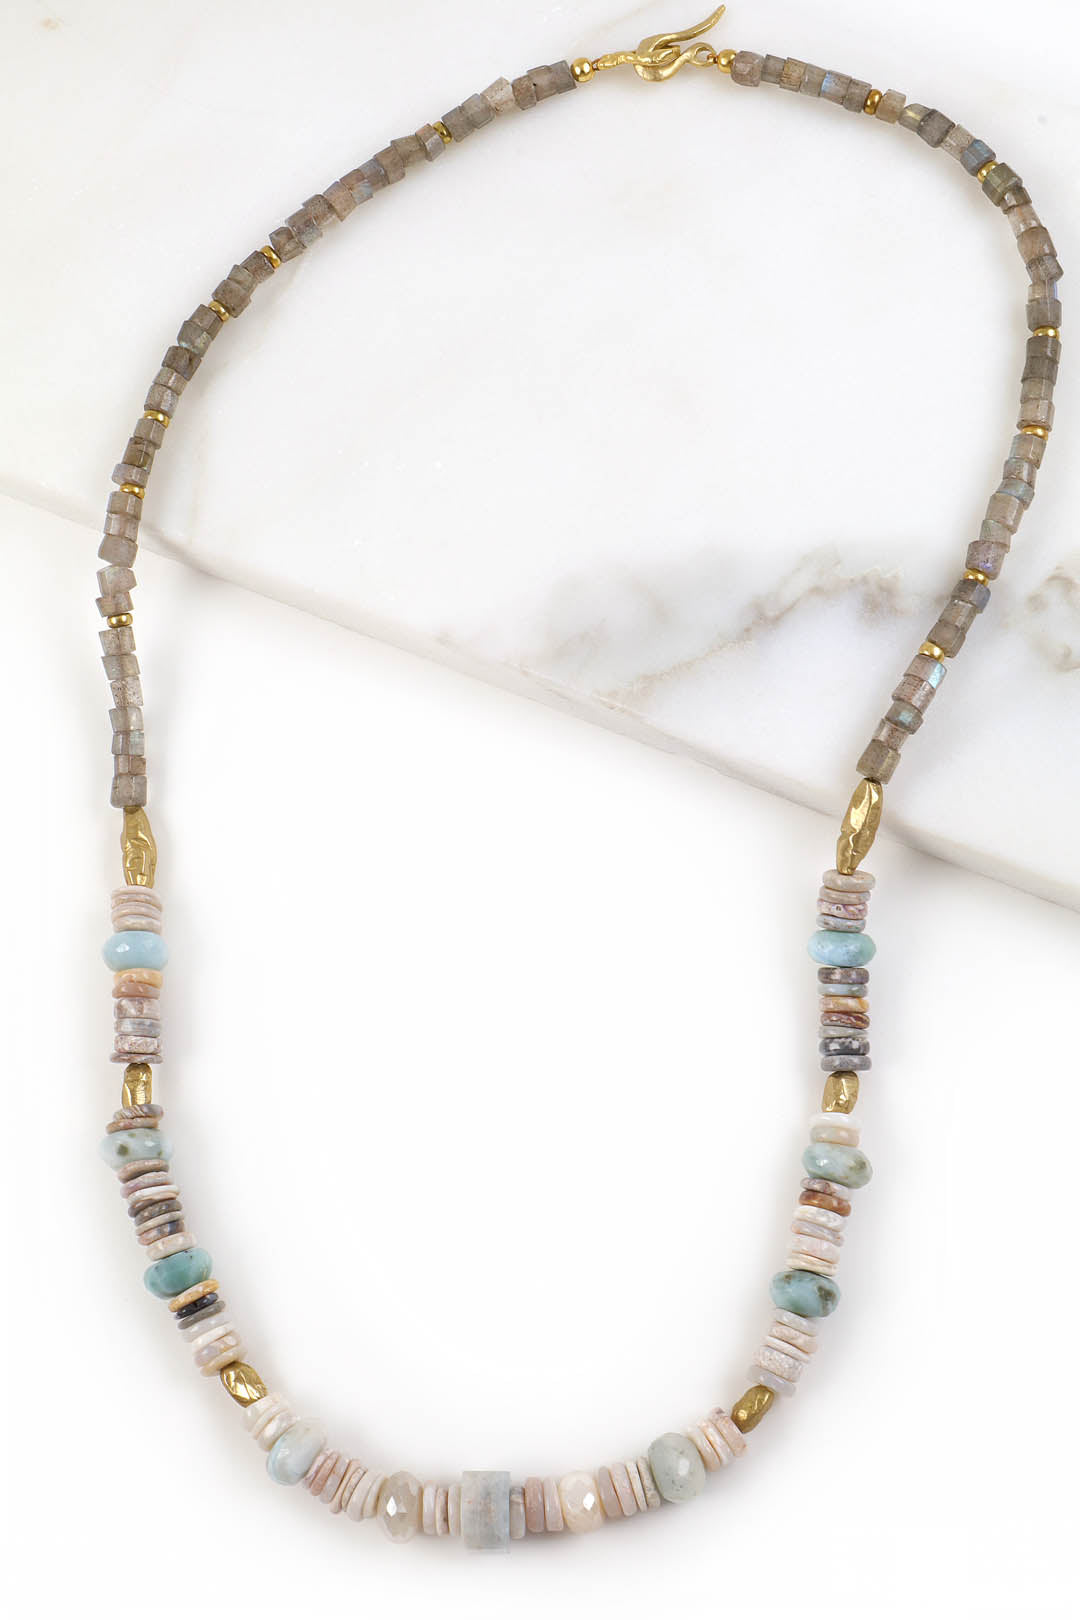 Opal, Larimar and Labradorite Necklace